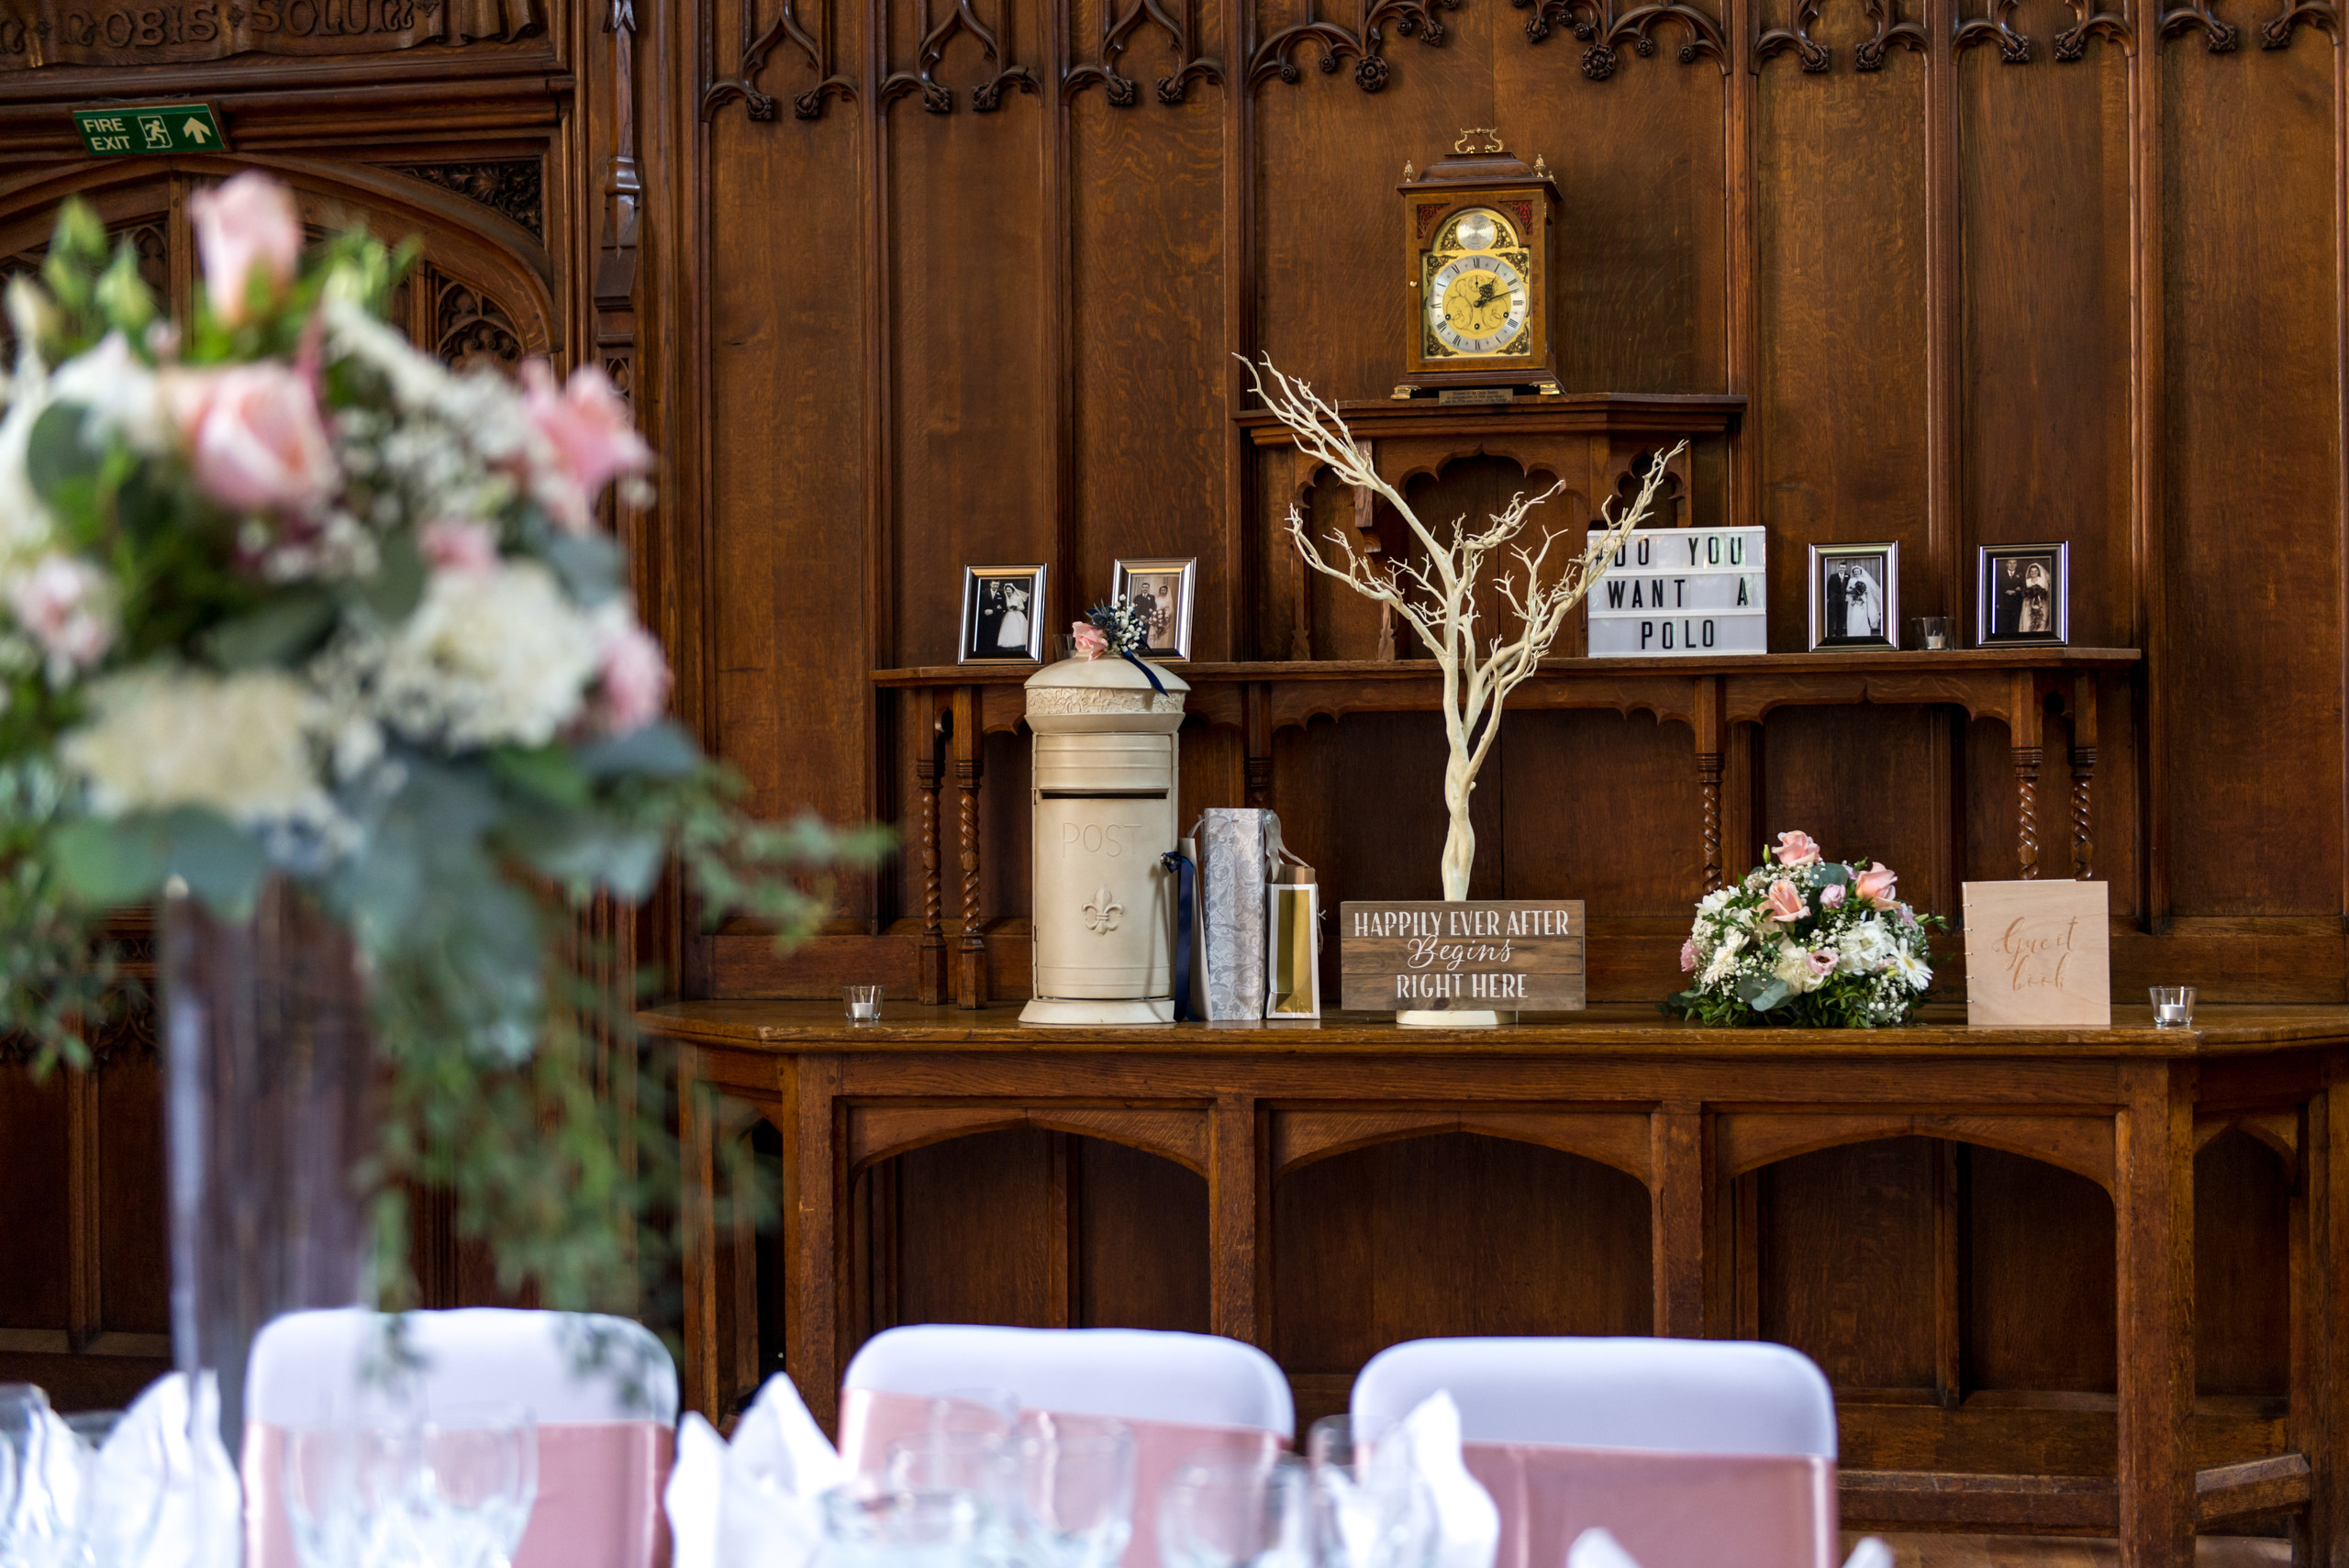 Photograph of wedding tree, post box and bridal bouquet